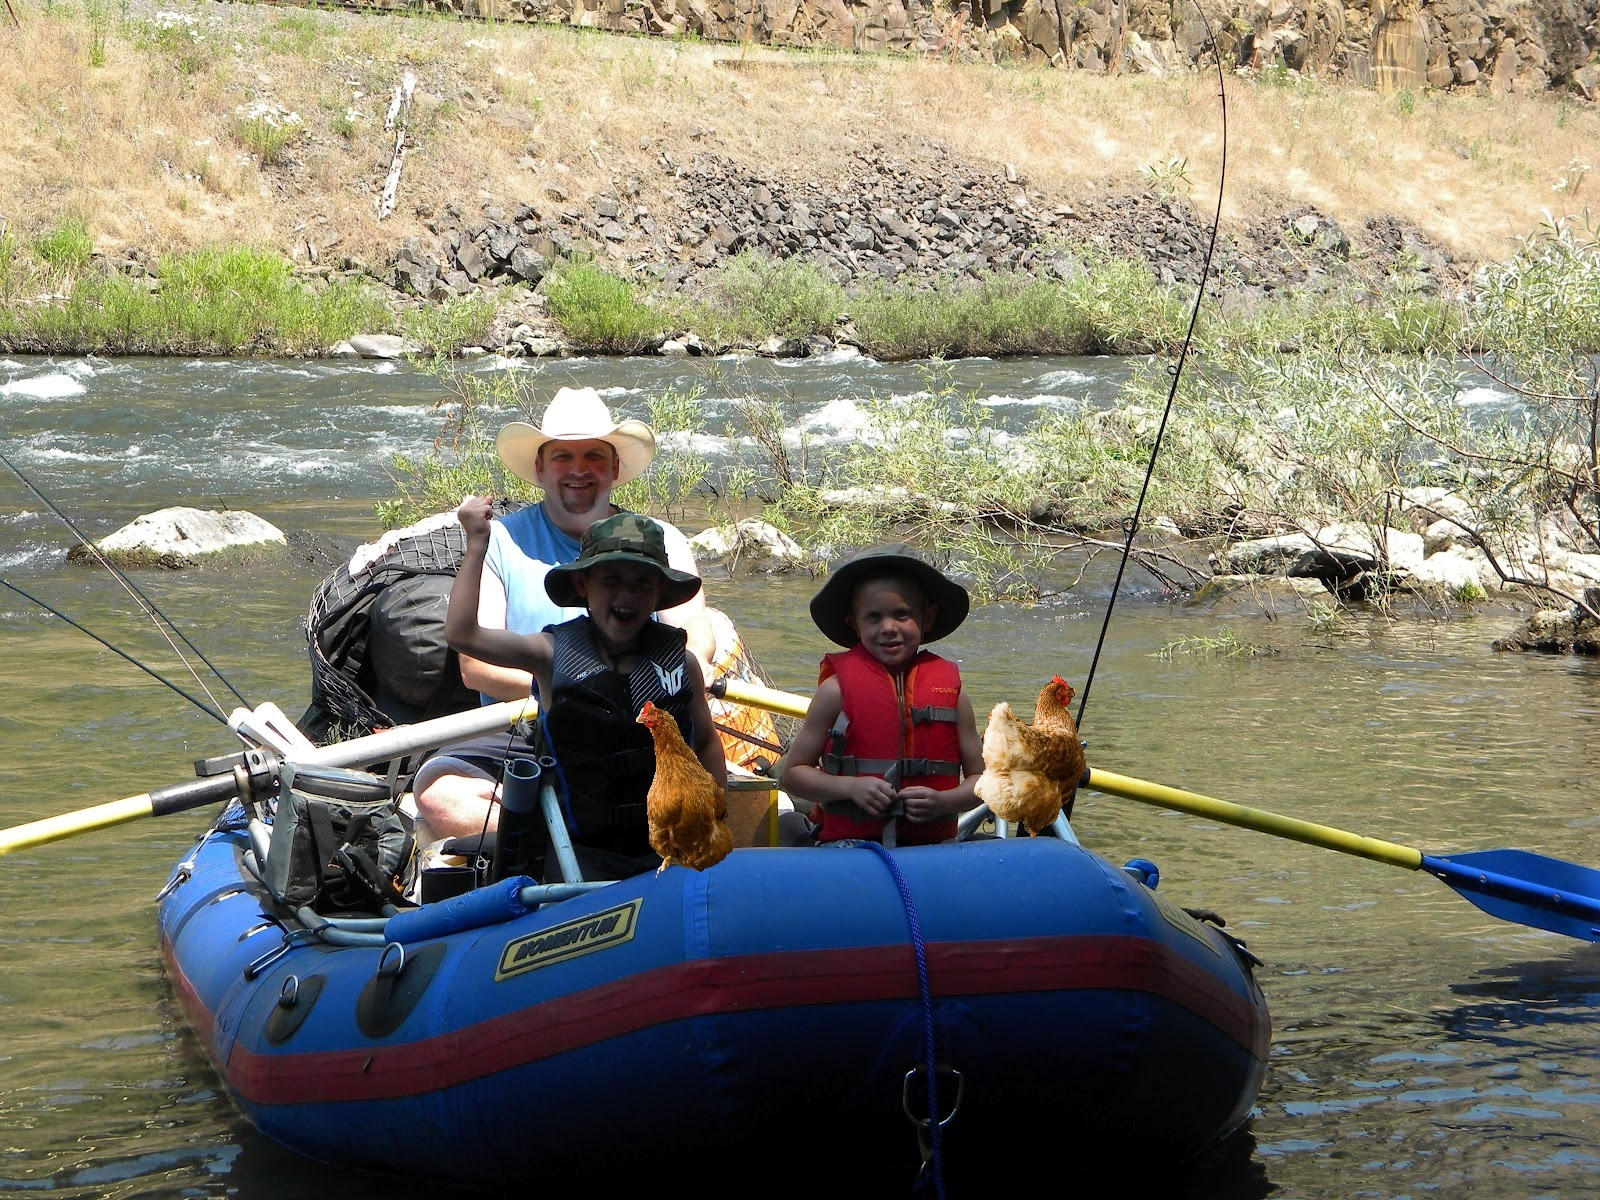 Click image for larger version  Name:rafting 2012 005.jpg Views:167 Size:953.3 KB ID:9788